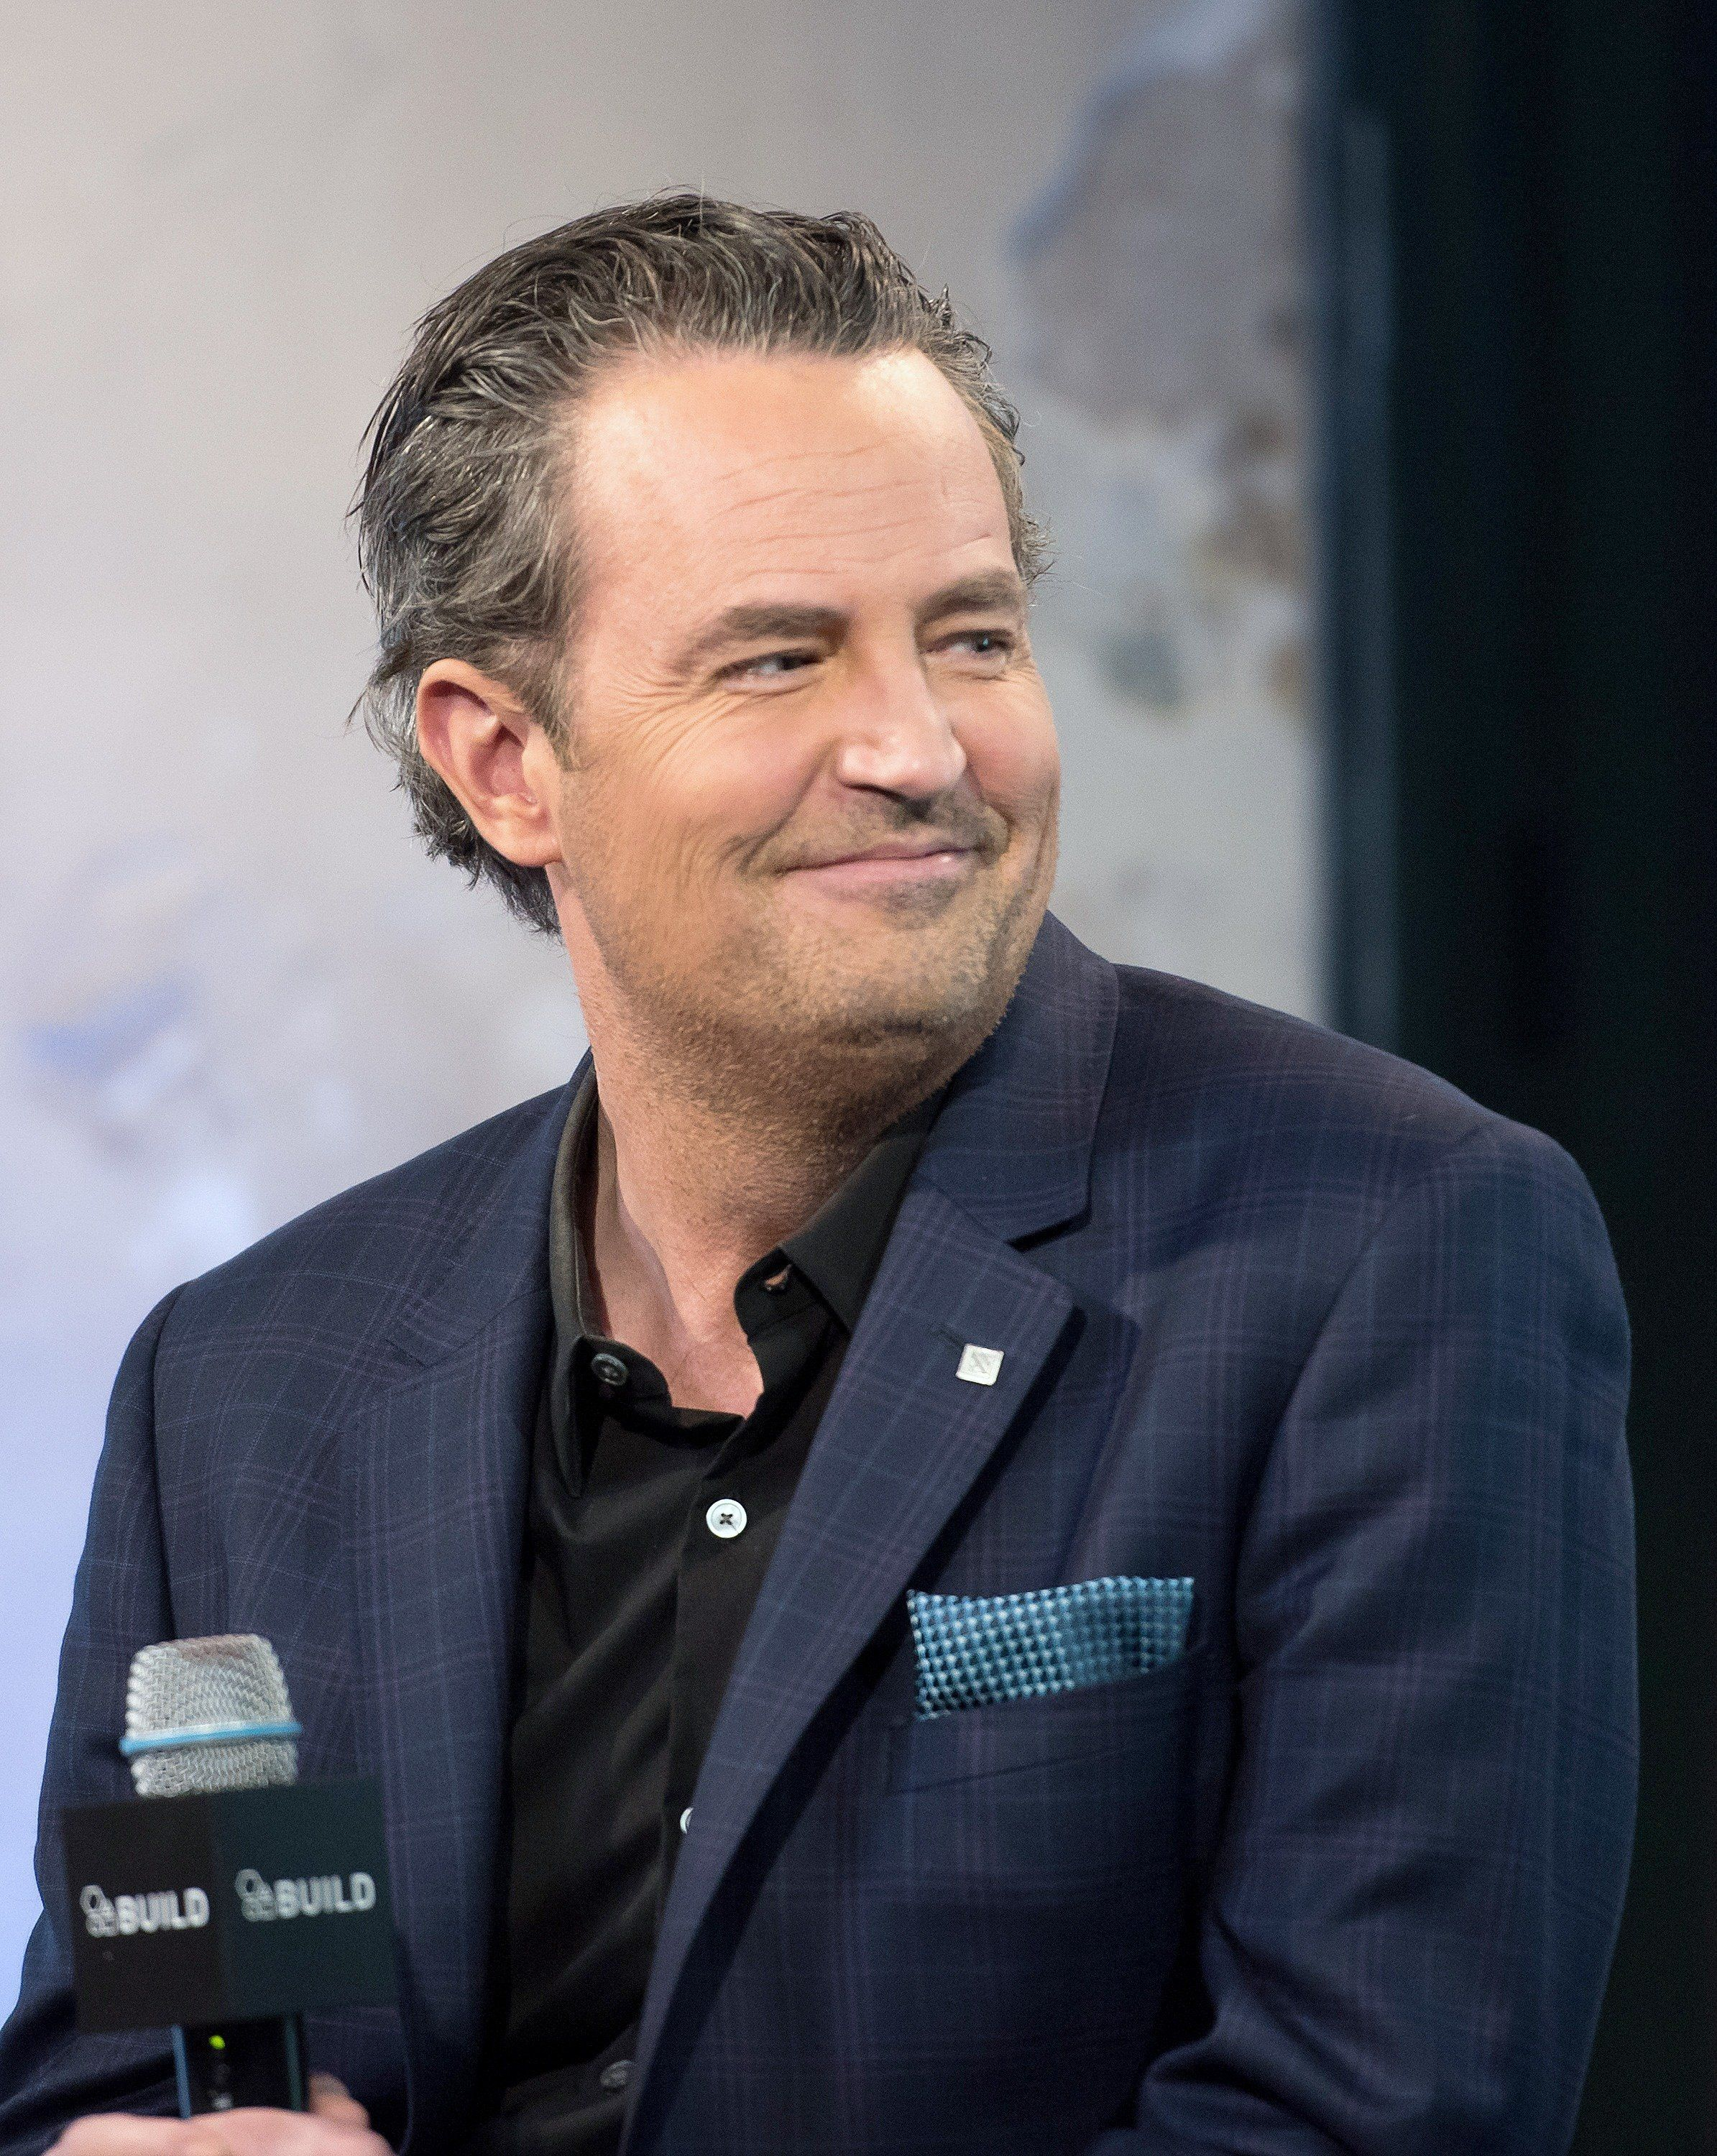 NEW YORK, NEW YORK - APRIL 05:  Actor Matthew Perry attends the AOL Build series to discuss 'The Odd Couple' at AOL Studios in New York on April 5, 2016 in New York City.  (Photo by Mike Pont/WireImage)